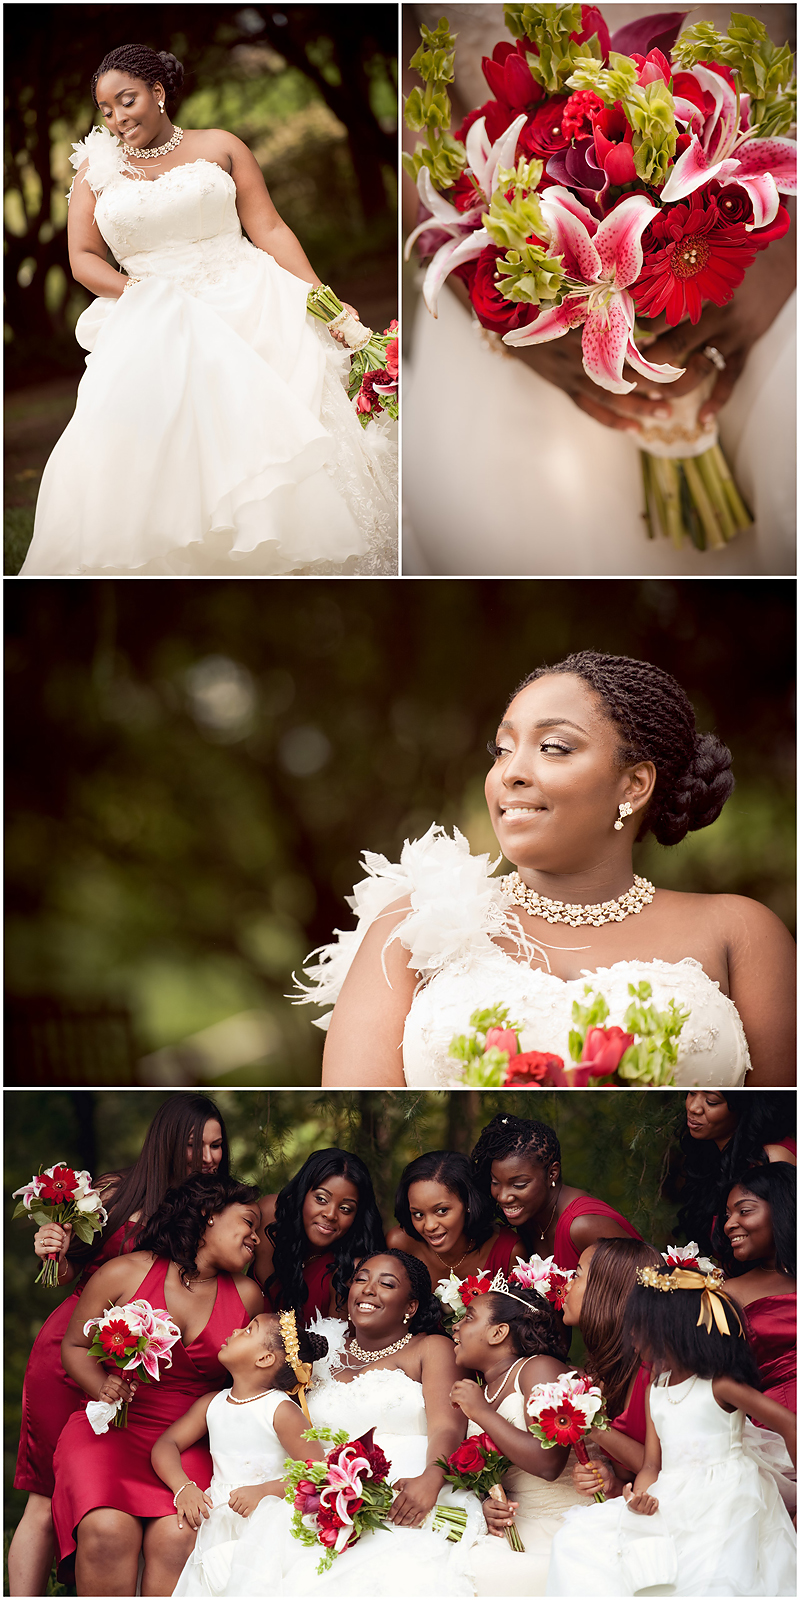 Everett and Nashawn Wedding2 Nashawn & Everett | Villa Christina Wedding | Atlanta, GA